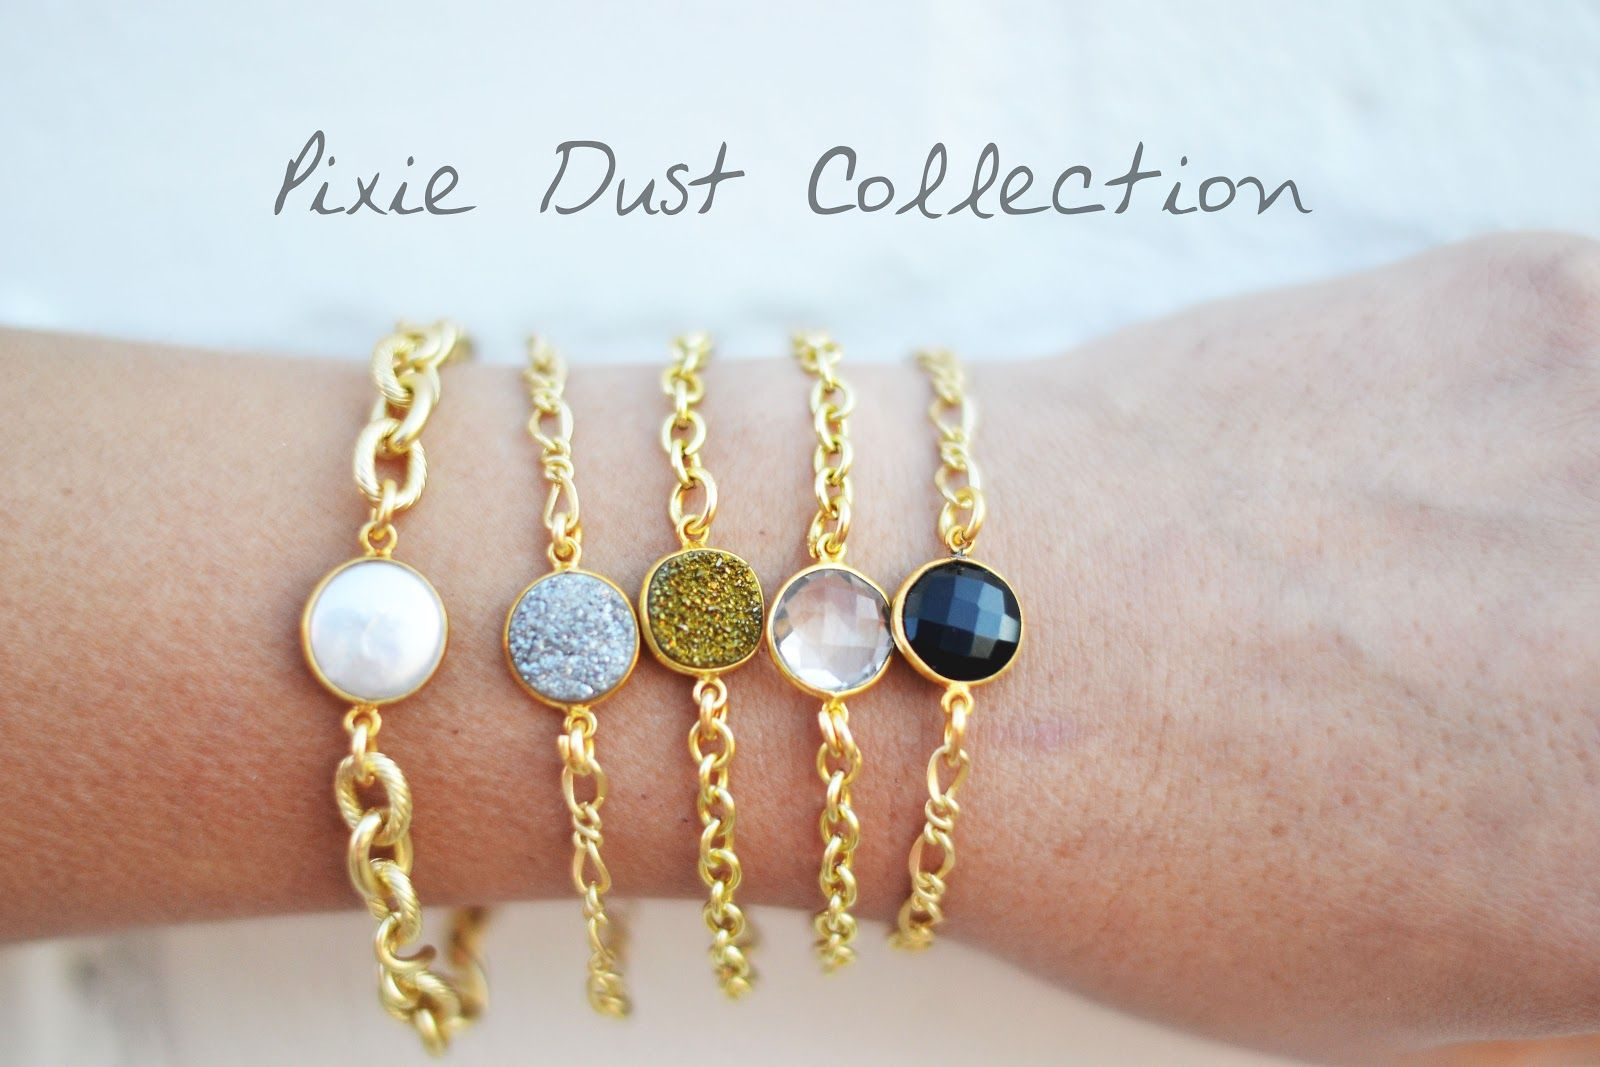 Beautiful bracelets made by American at-risk youth! #bracelets #accessories